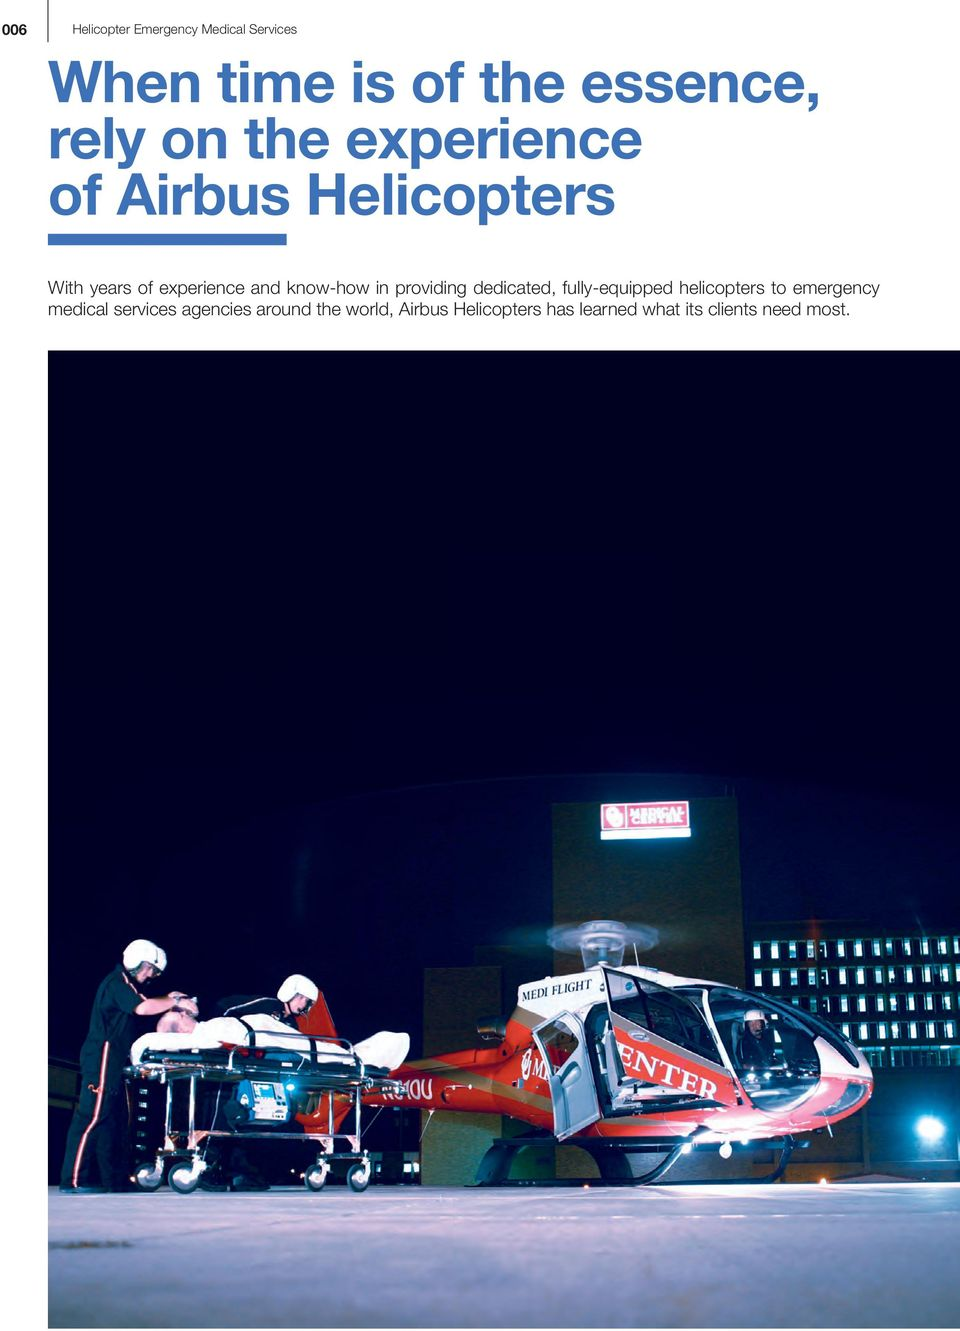 providing dedicated, fully-equipped helicopters to emergency medical services